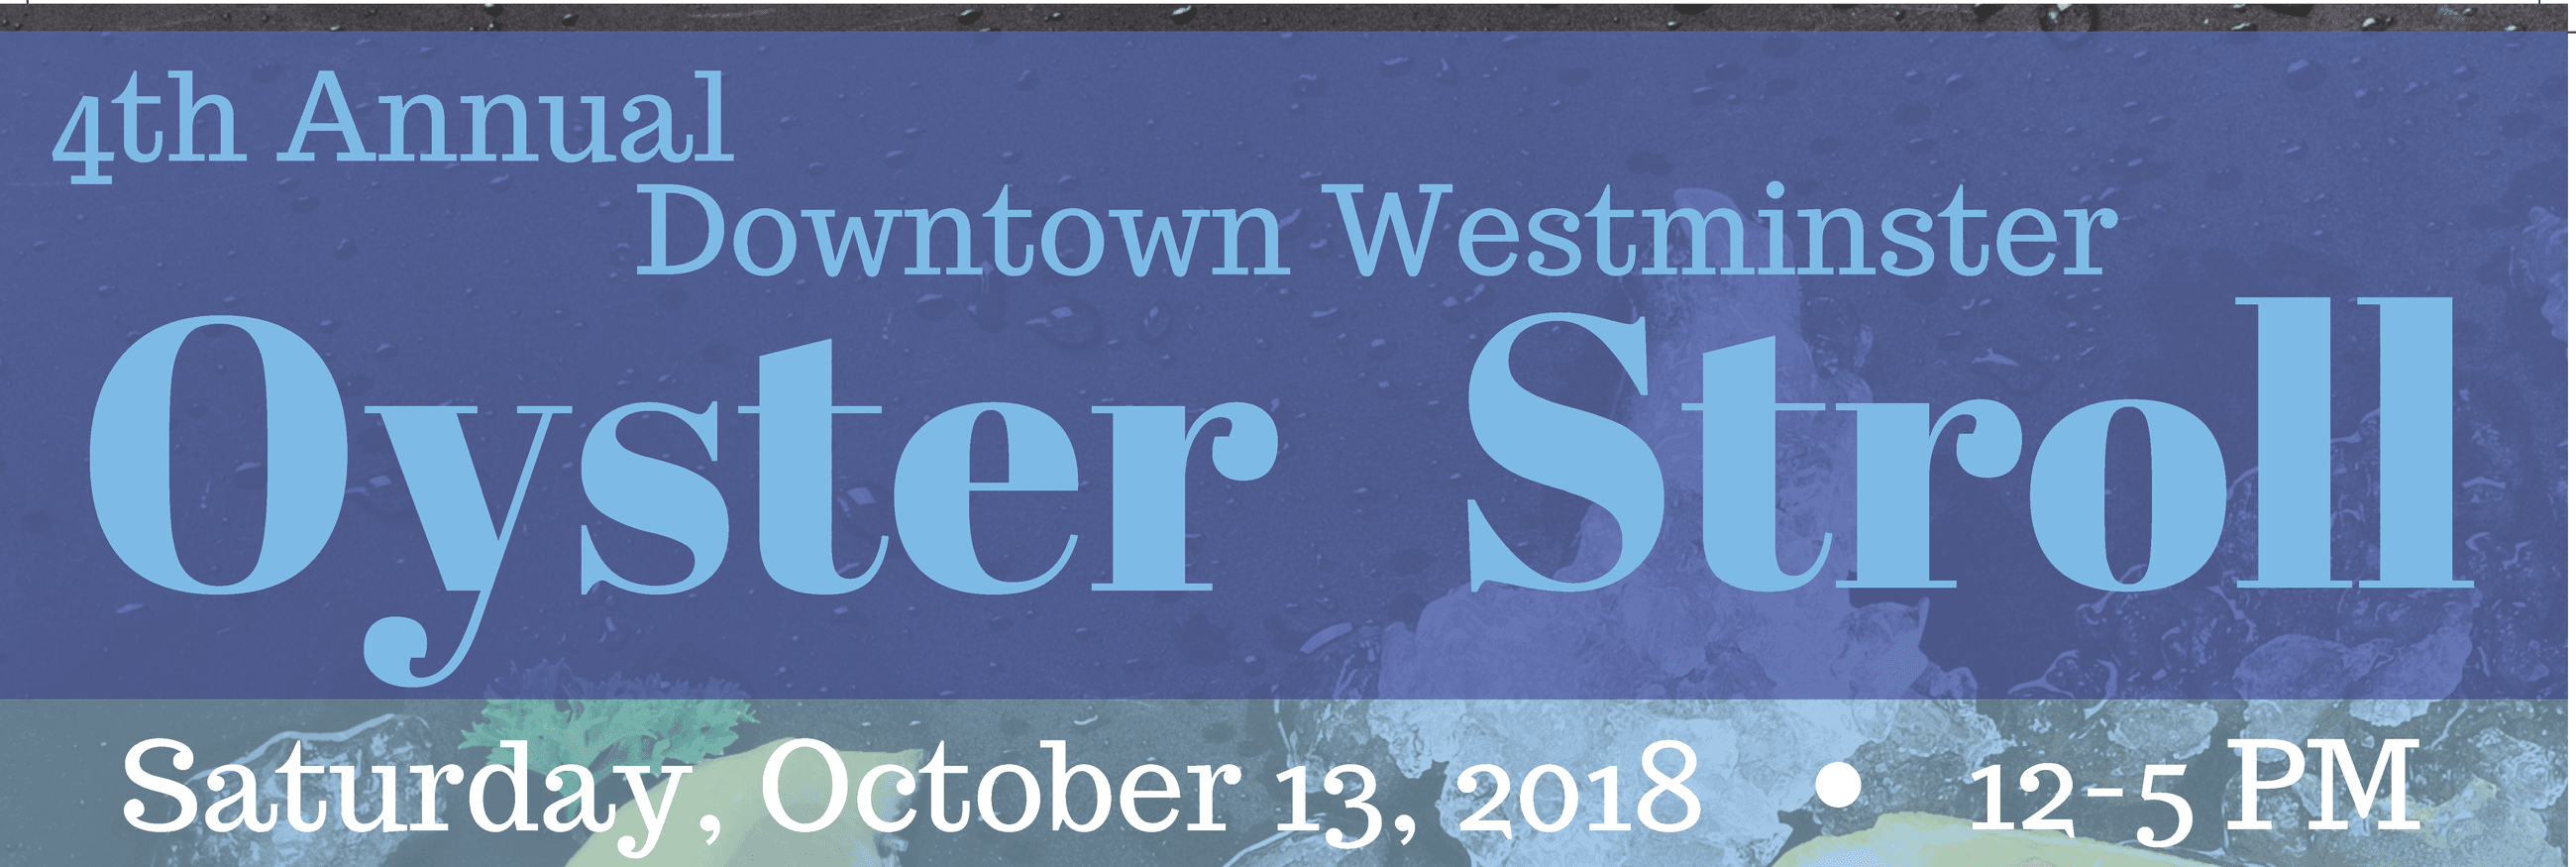 2018 Oyster Stroll banner